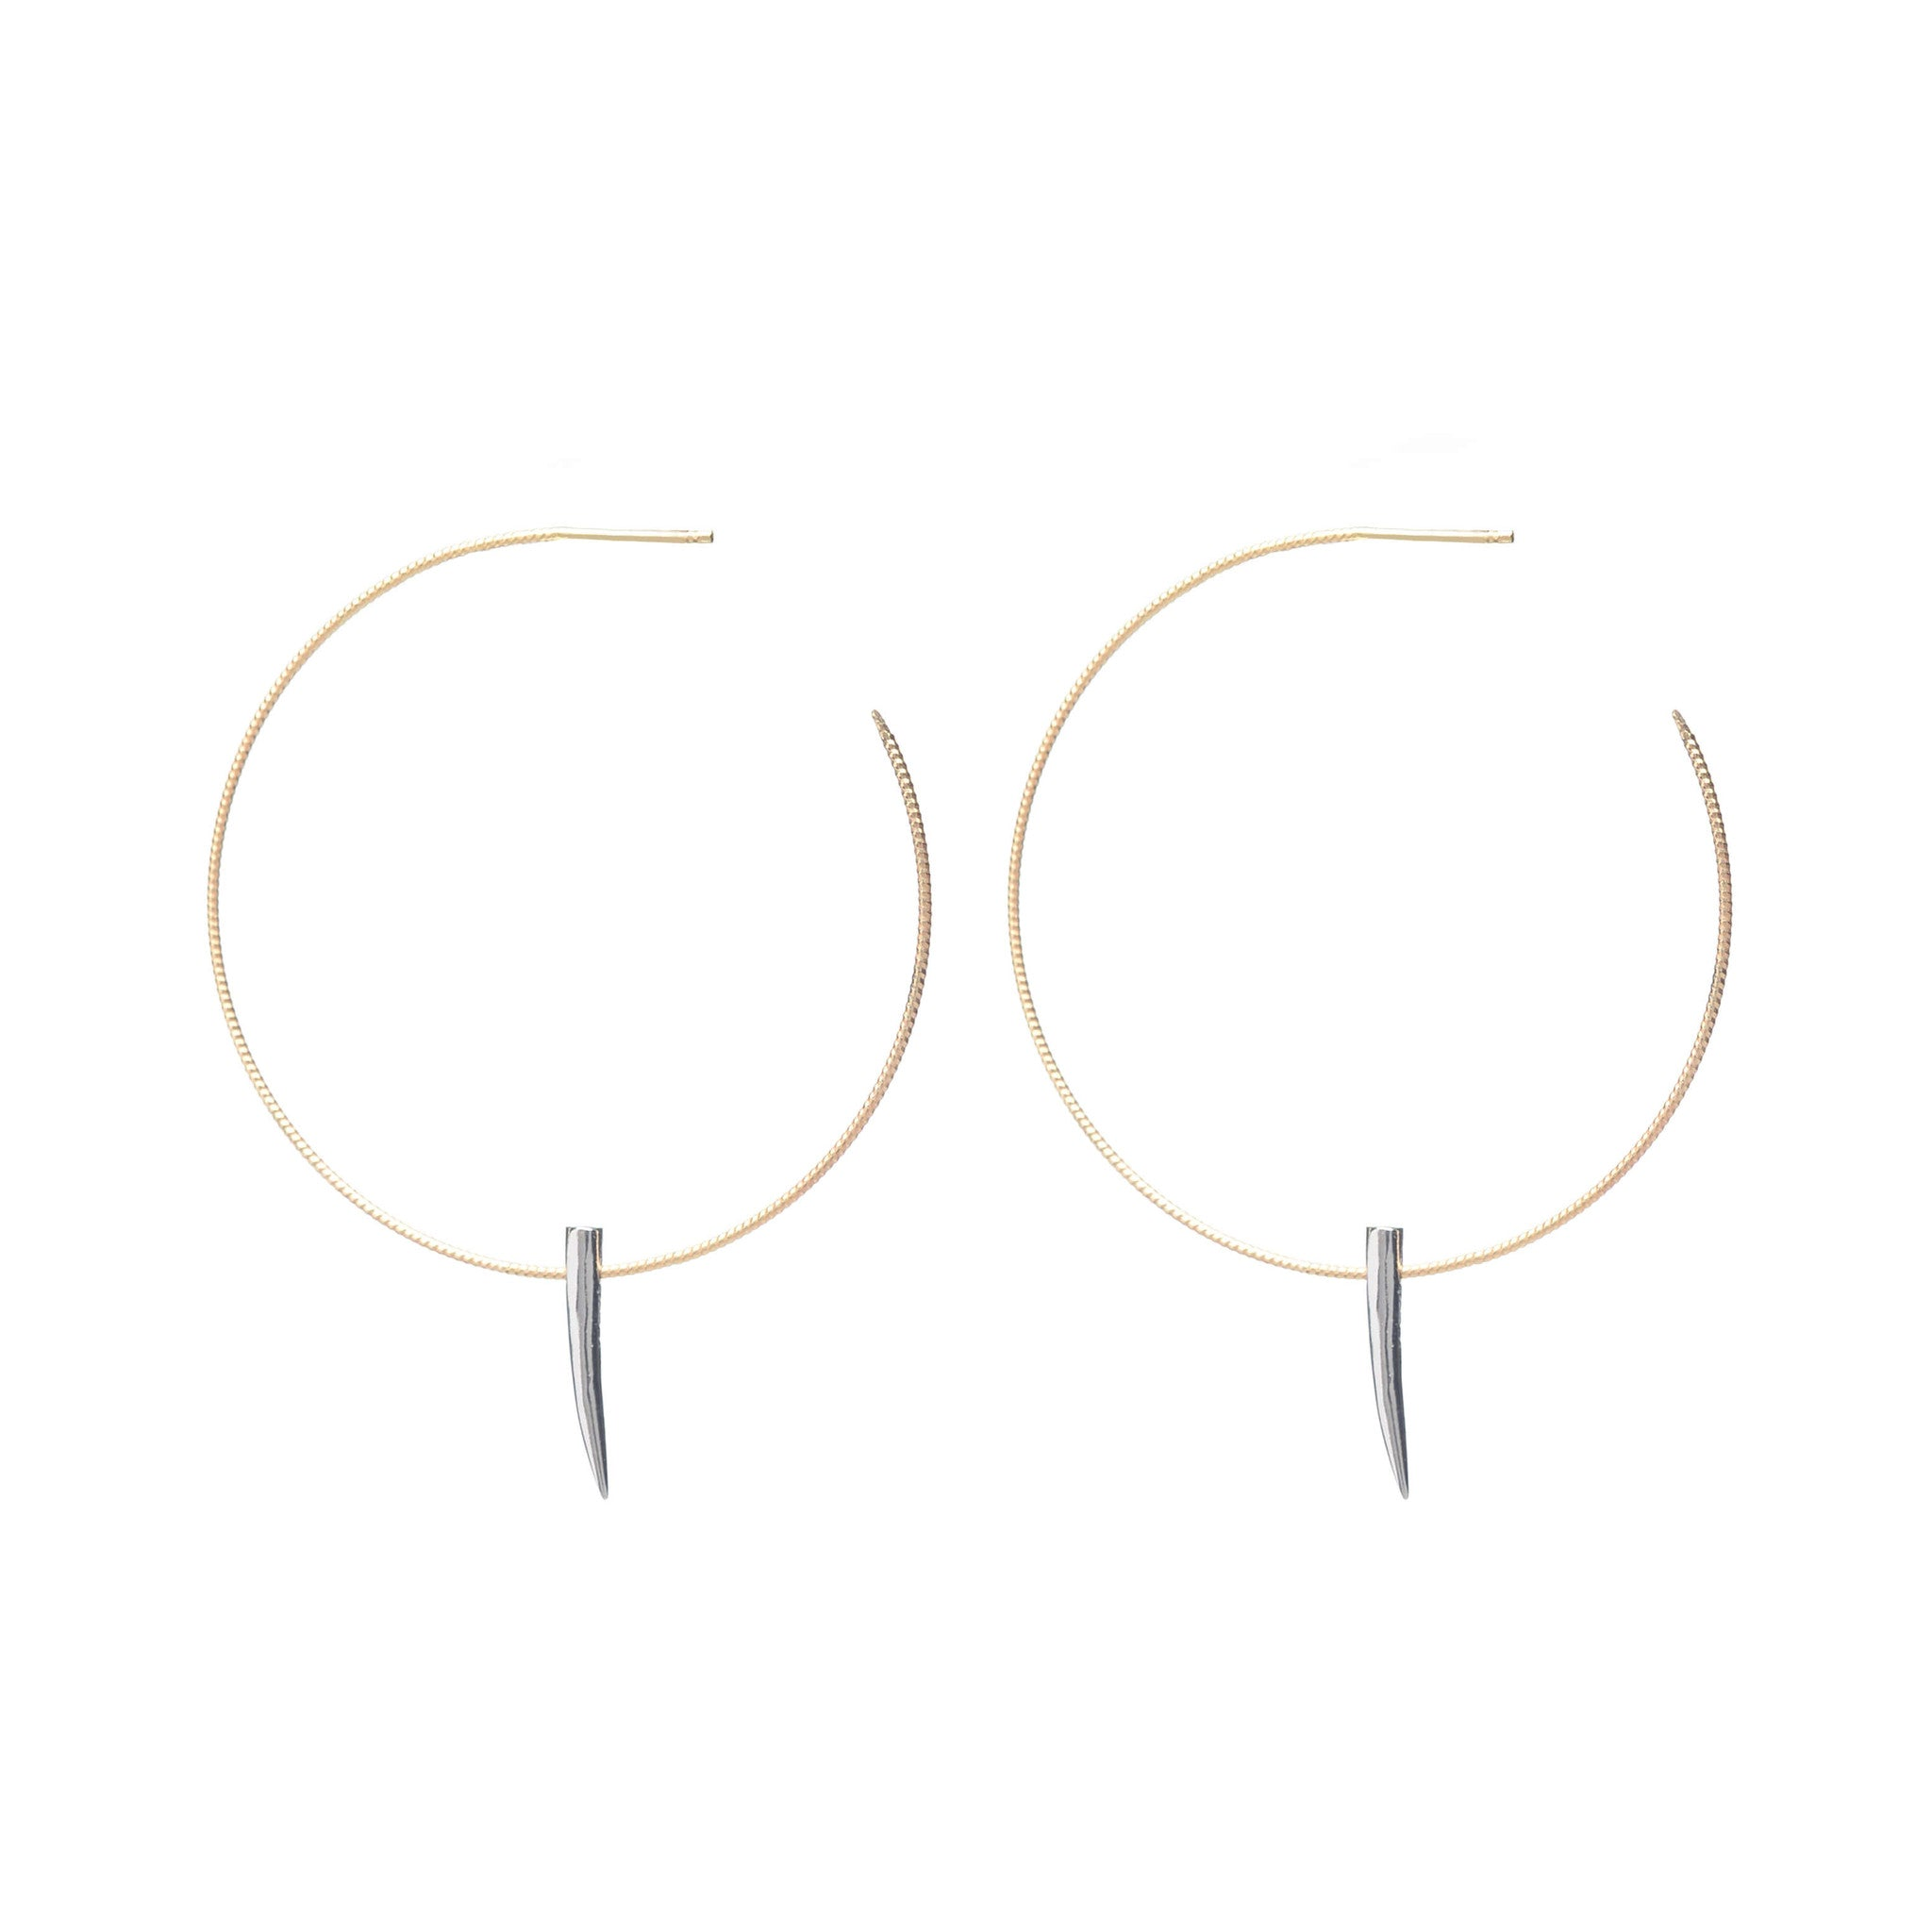 Sterling Silver mixed and spiked hoop earrings